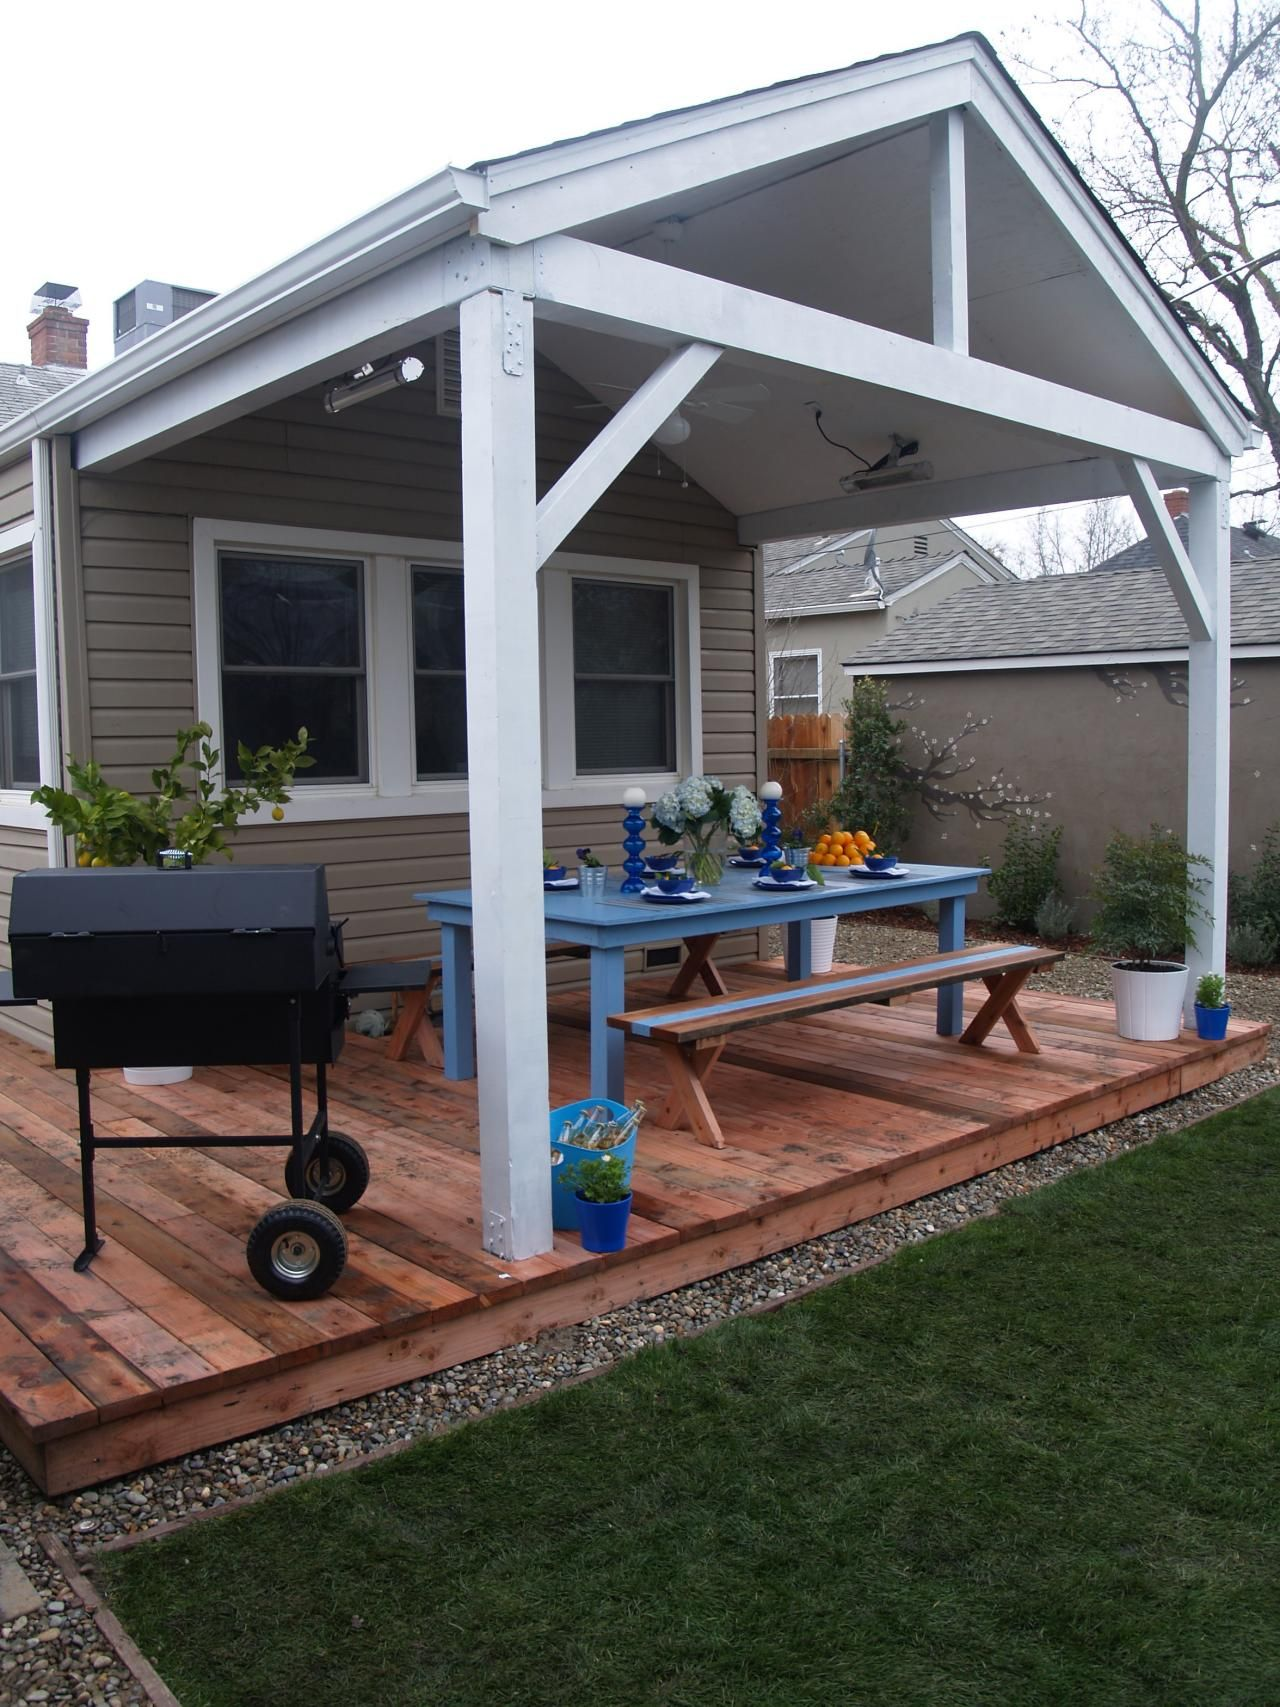 Beautiful decks designed by diy network experts diy for Backyard decks